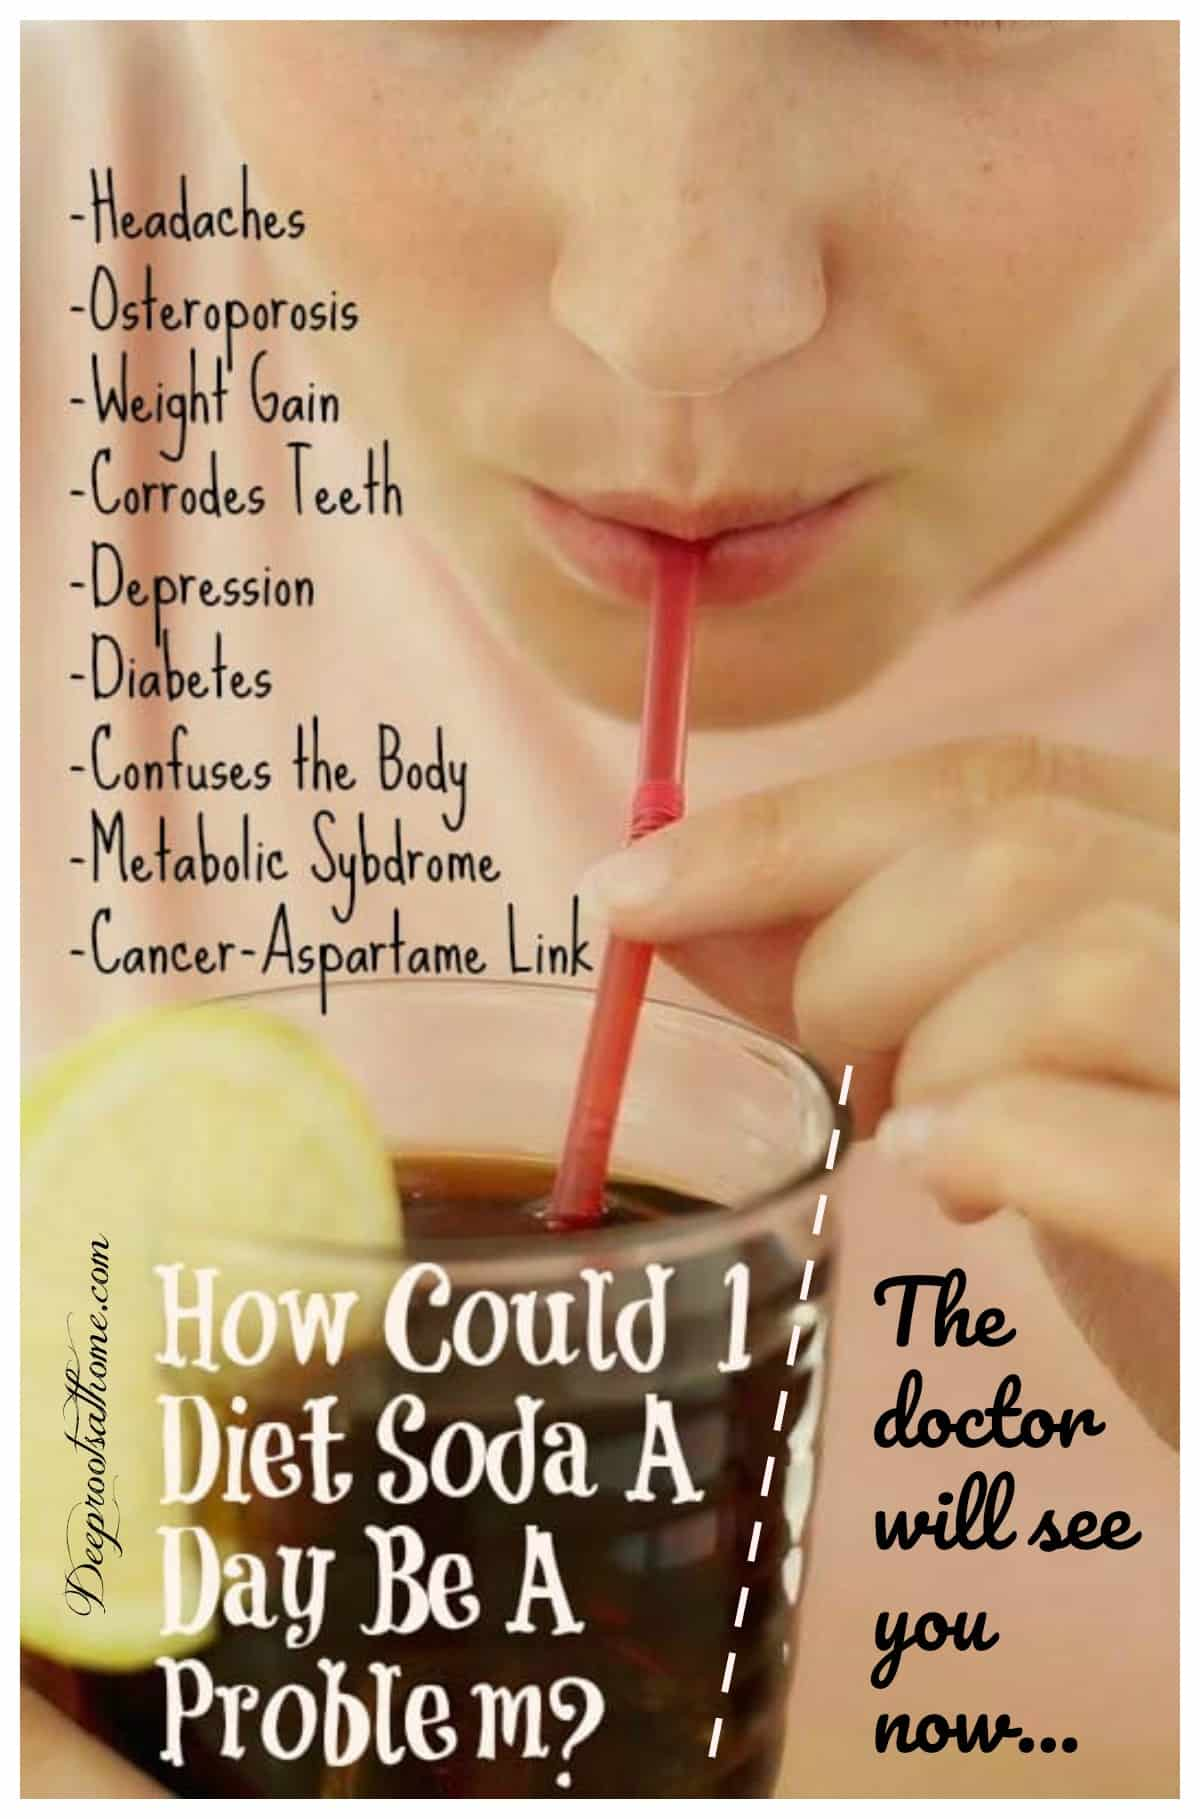 How Could A Diet Soda A Day Be A Problem? Here Are 8 Ways. drinking a soda through a straw.